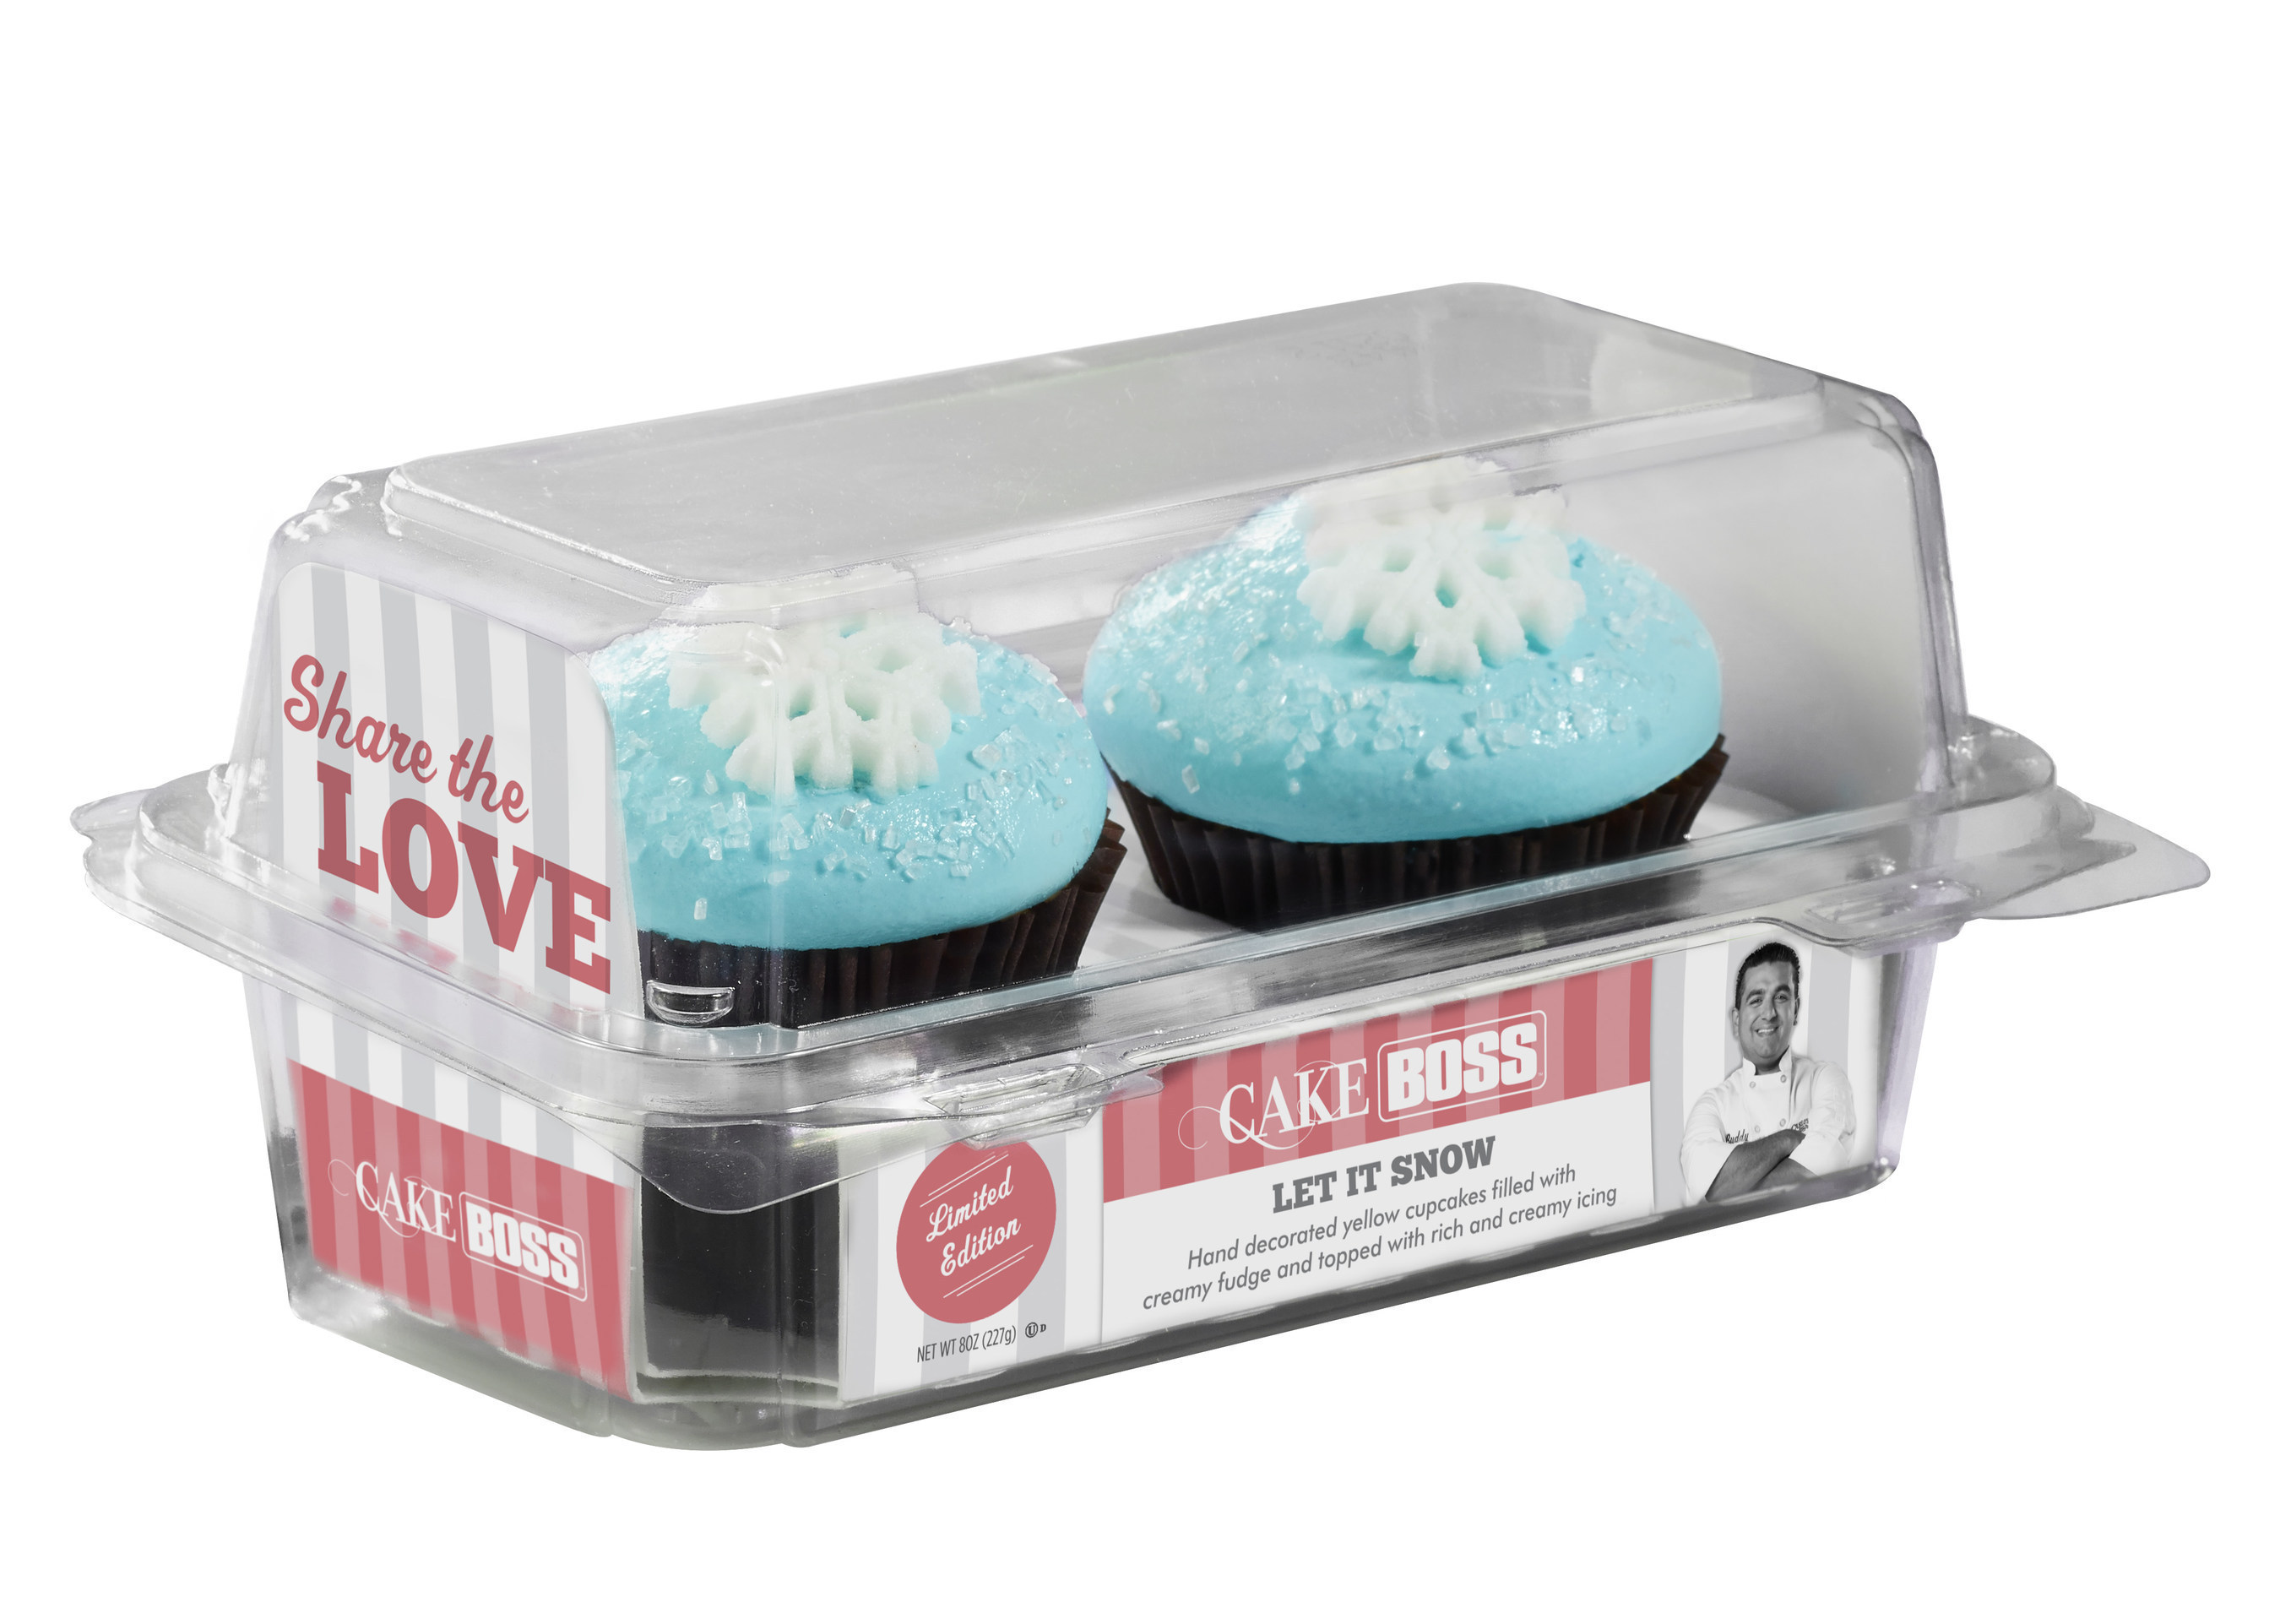 Cake Boss Let It Snow 2-count Cupcakes